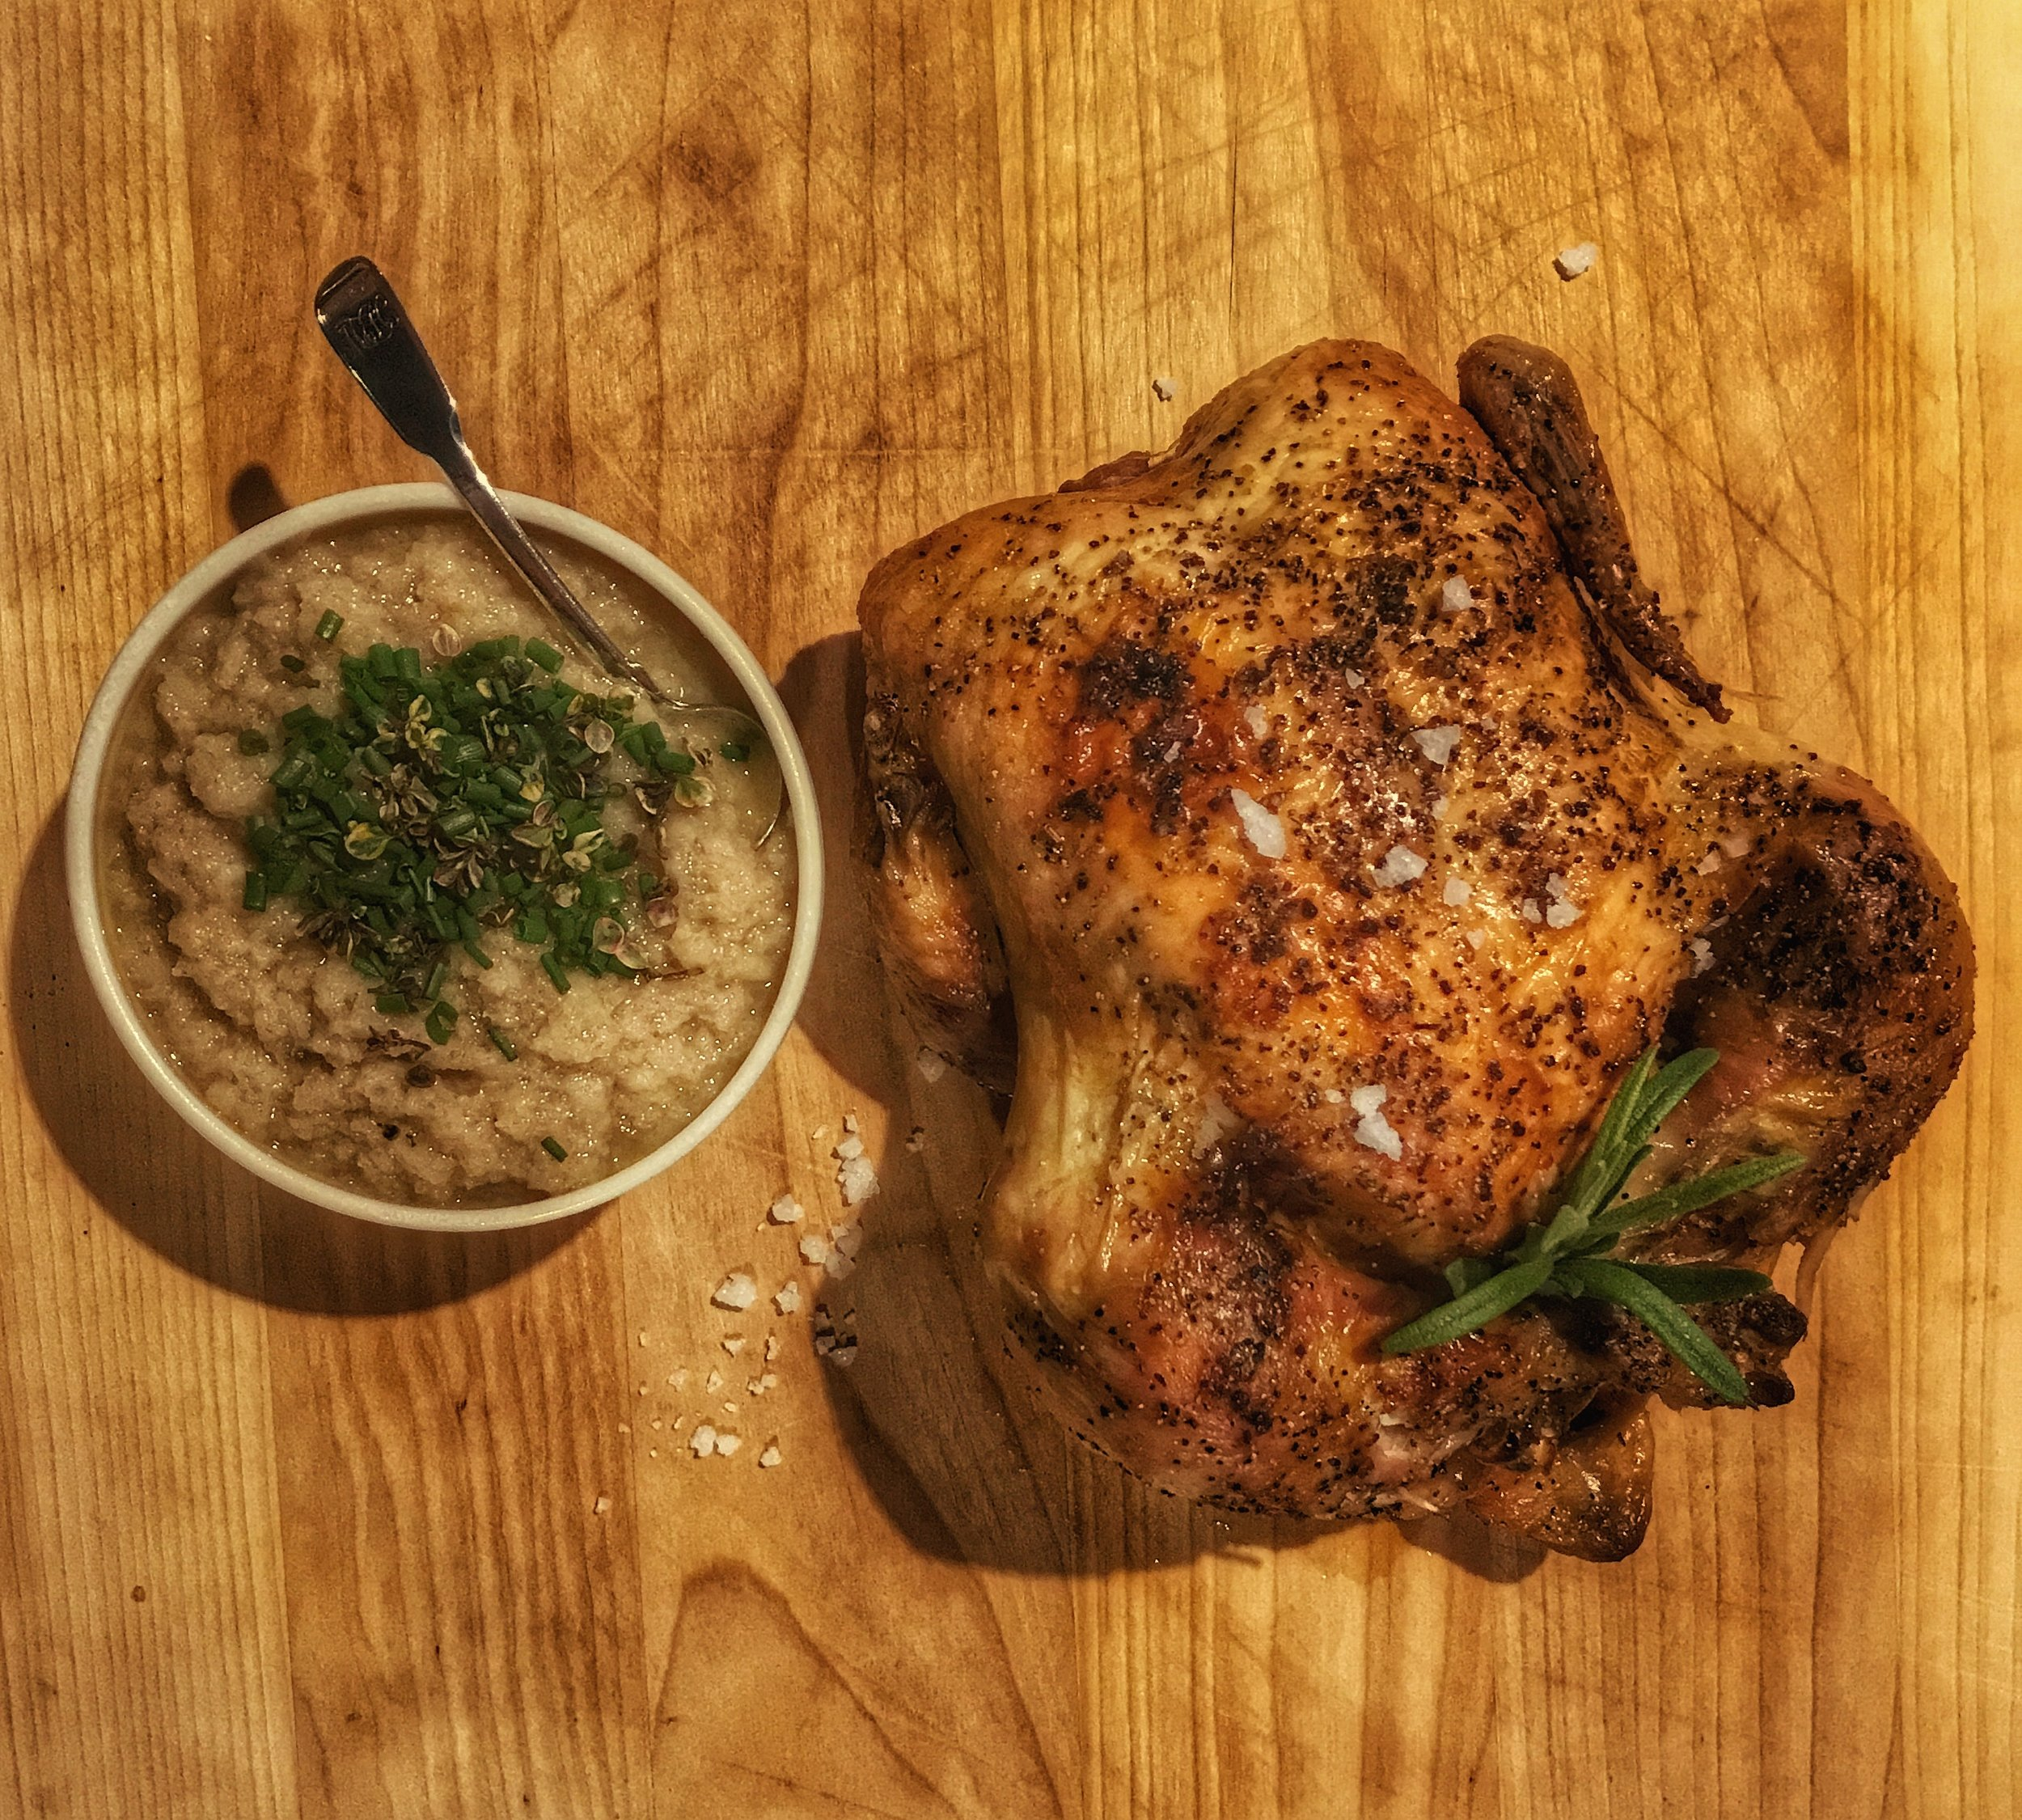 Whole roasted chicken with bread sauce. As with many 17th century recipes, the sauce tastes a whole lot better than it looks.